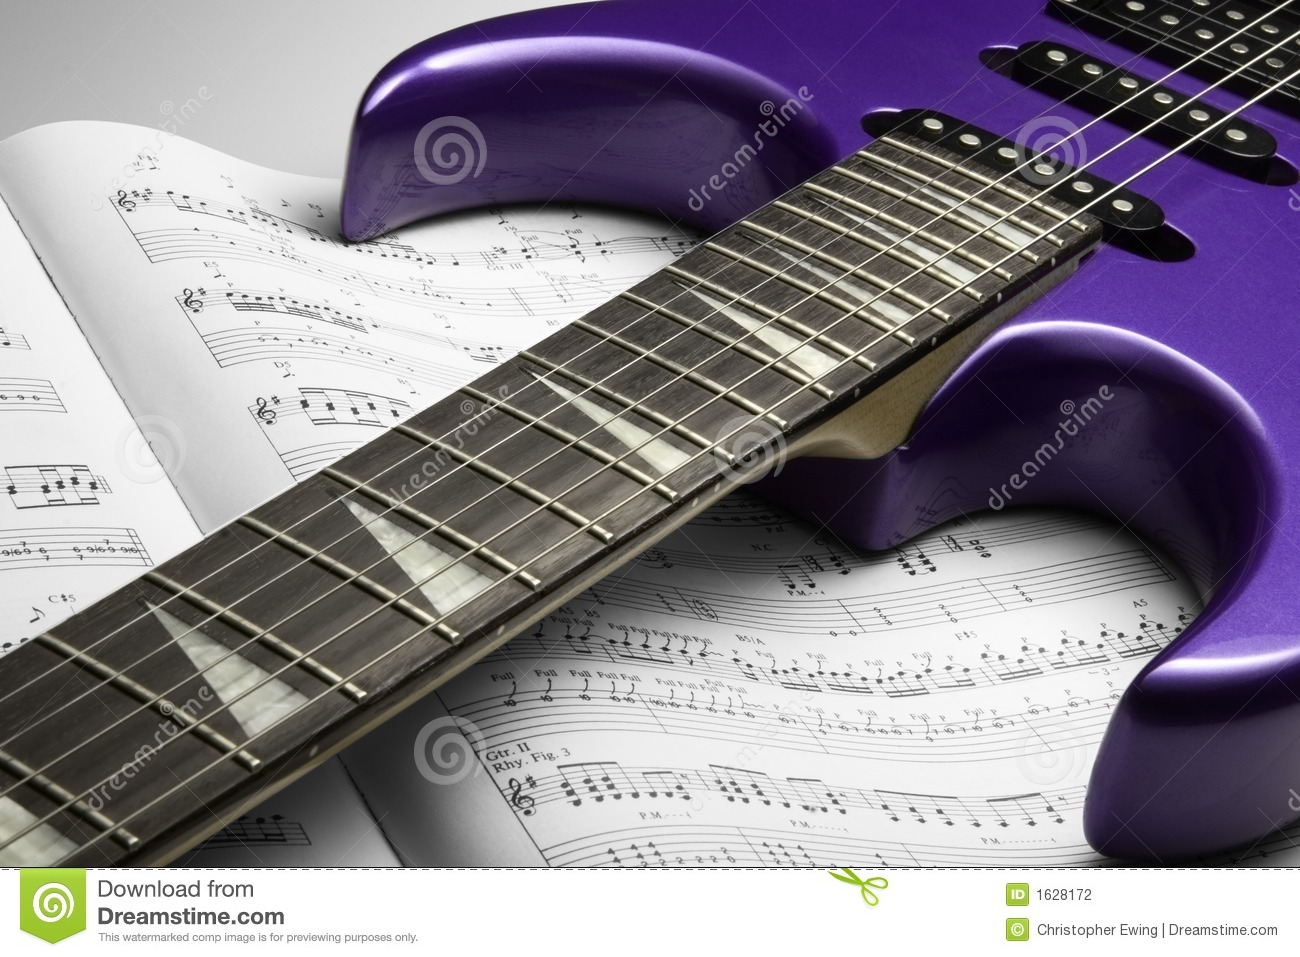 electric guitar on sheet music stock photo image of notes melody 1628172. Black Bedroom Furniture Sets. Home Design Ideas